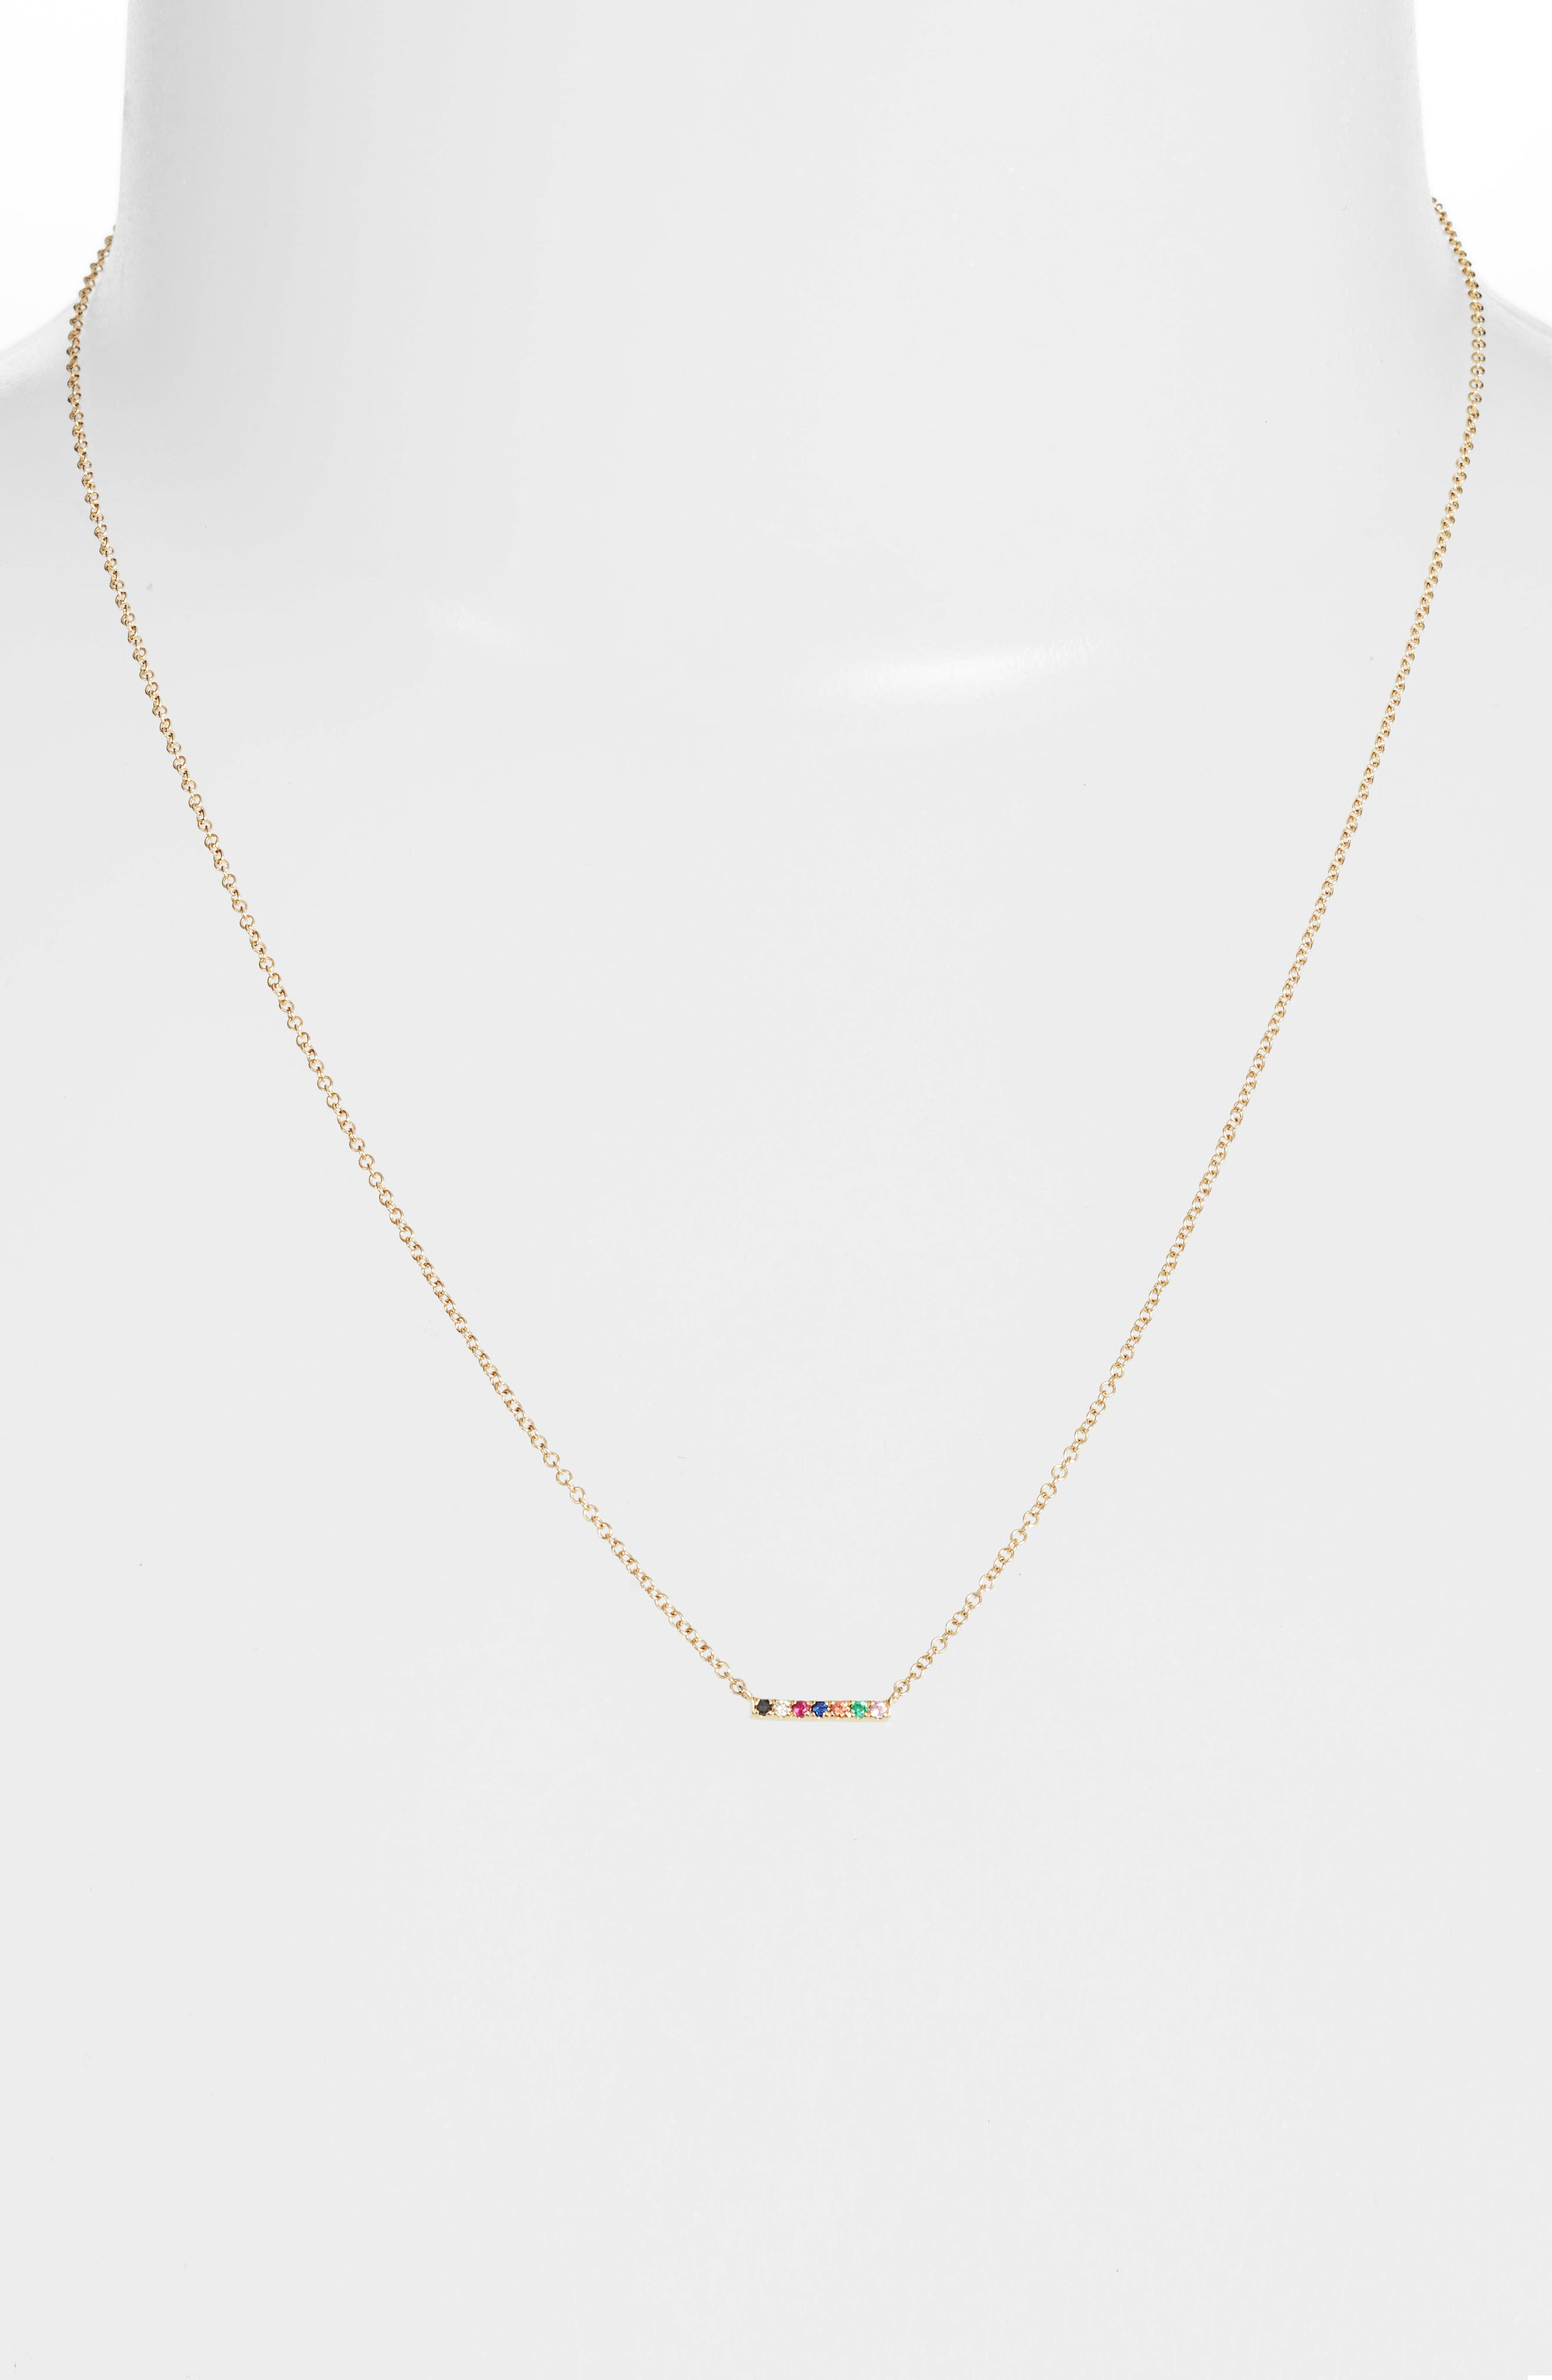 Mini Bar Rainbow Necklace,                             Alternate thumbnail 2, color,                             YELLOW GOLD